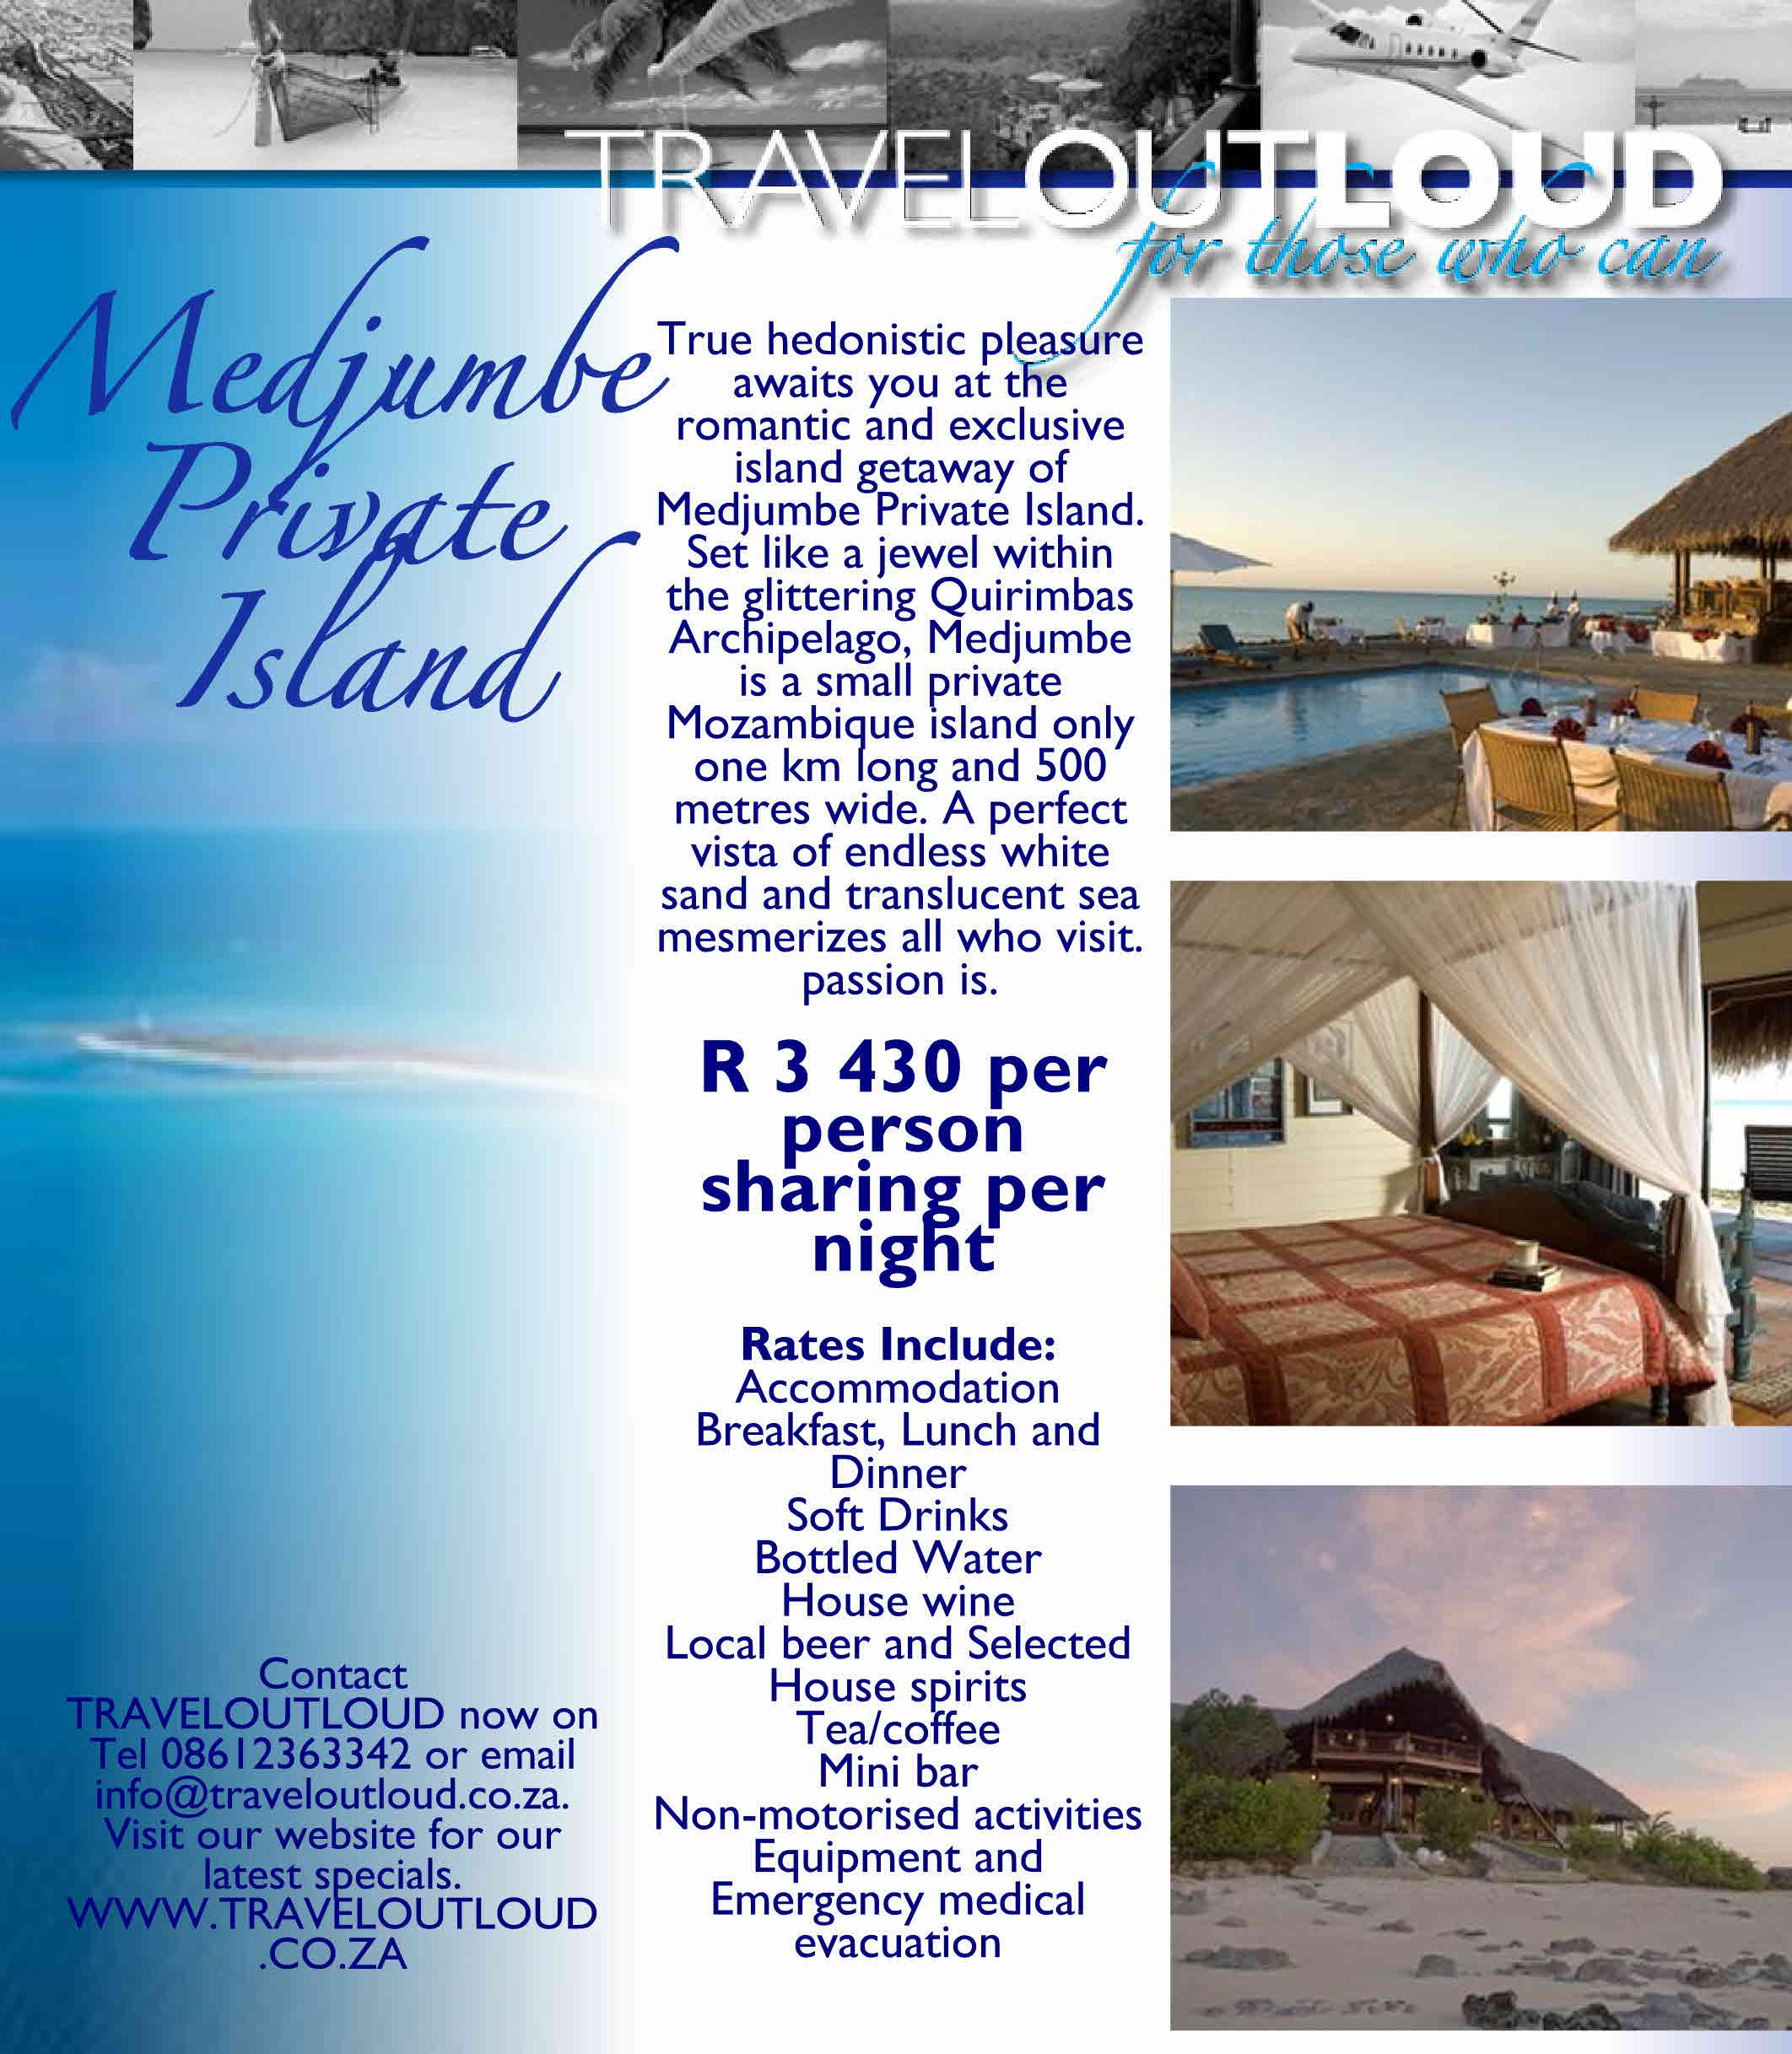 Medjumbe Private Island Quirimbas Archipelago, Mozambique True hedonistic pleasure awaits you at the romantic and exclusive island getaway of Medjumbe Private Island. Set like a jewel within the glittering Quirimbas Archipelago, Medjumbe is a small private Mozambique island only one km long and 500 metres wide. A perfect vista of endless white sand and translucent sea mesmerizes all who visit. TRAVELOUTLOUD 08612363342 or email info@traveloutloud.co.za. WWW.TRAVELOUTLOUD.CO.ZA